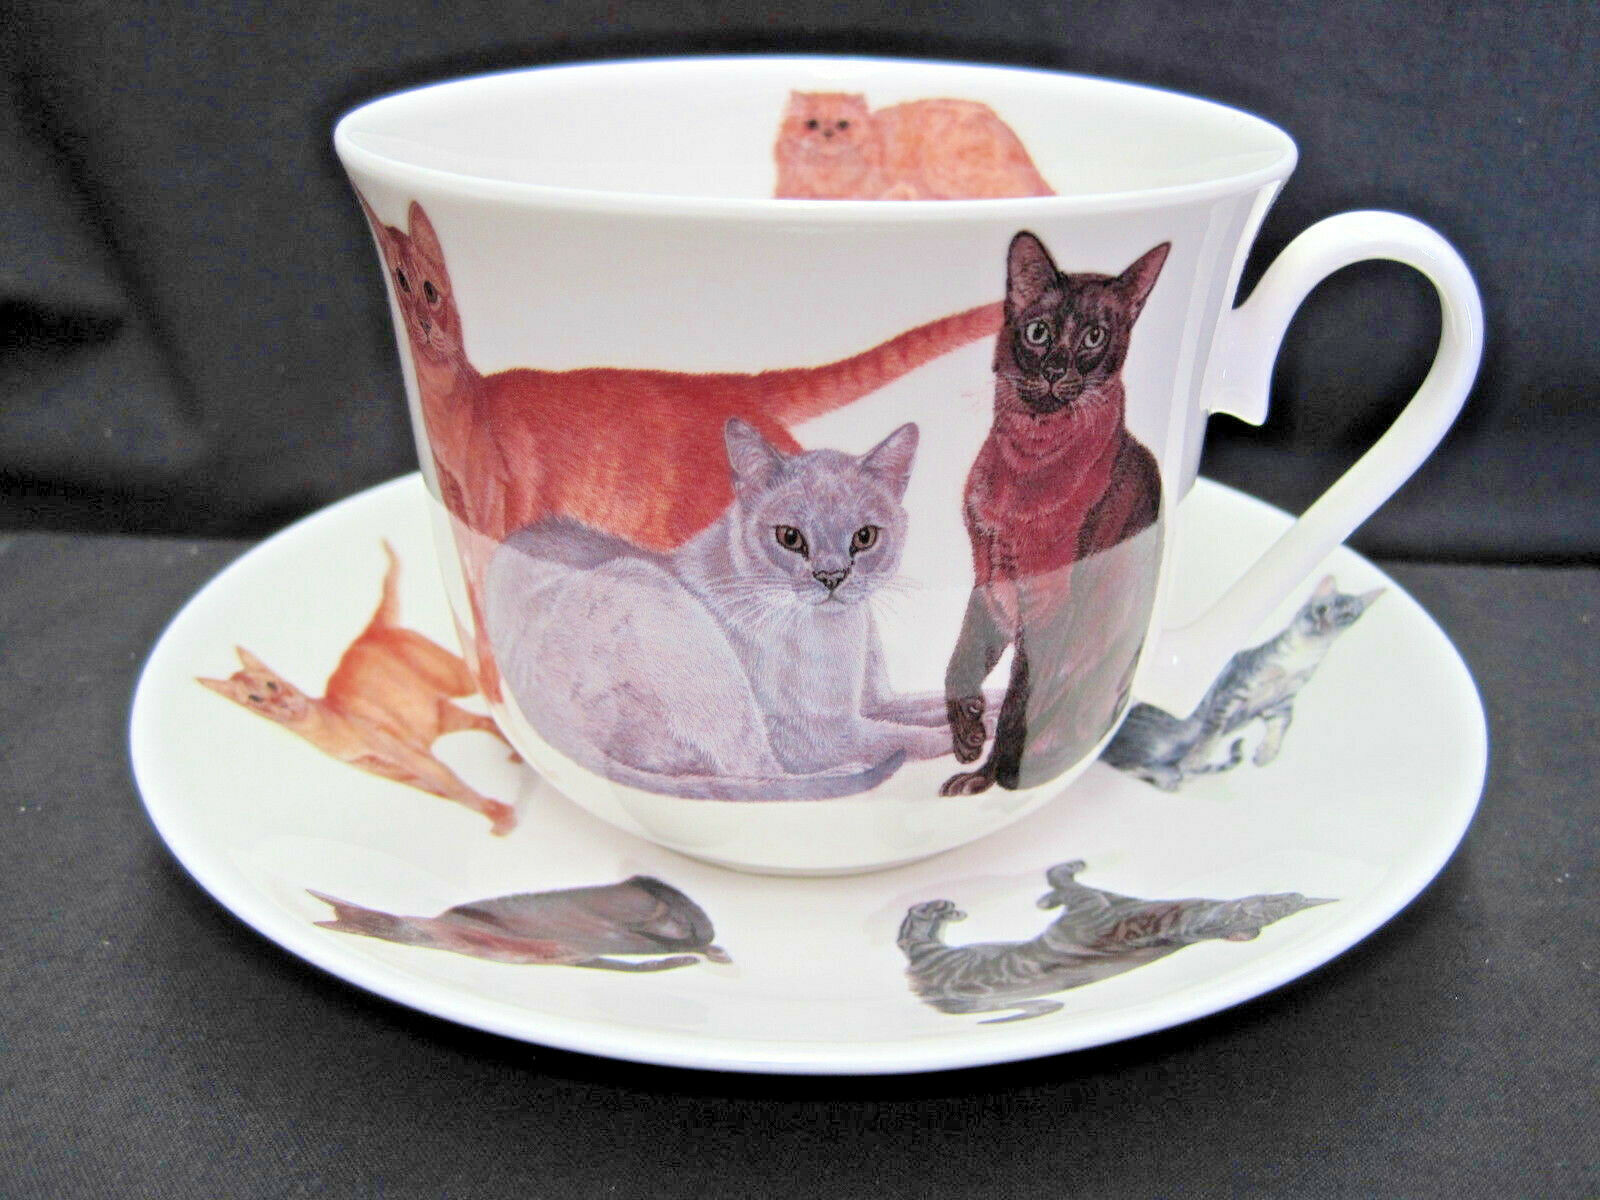 CATS GALORE, FINE BONE CHINA BREAKFAST CUP SAUCER, ROY KIRKHAM, MADE IN  ENGLAND